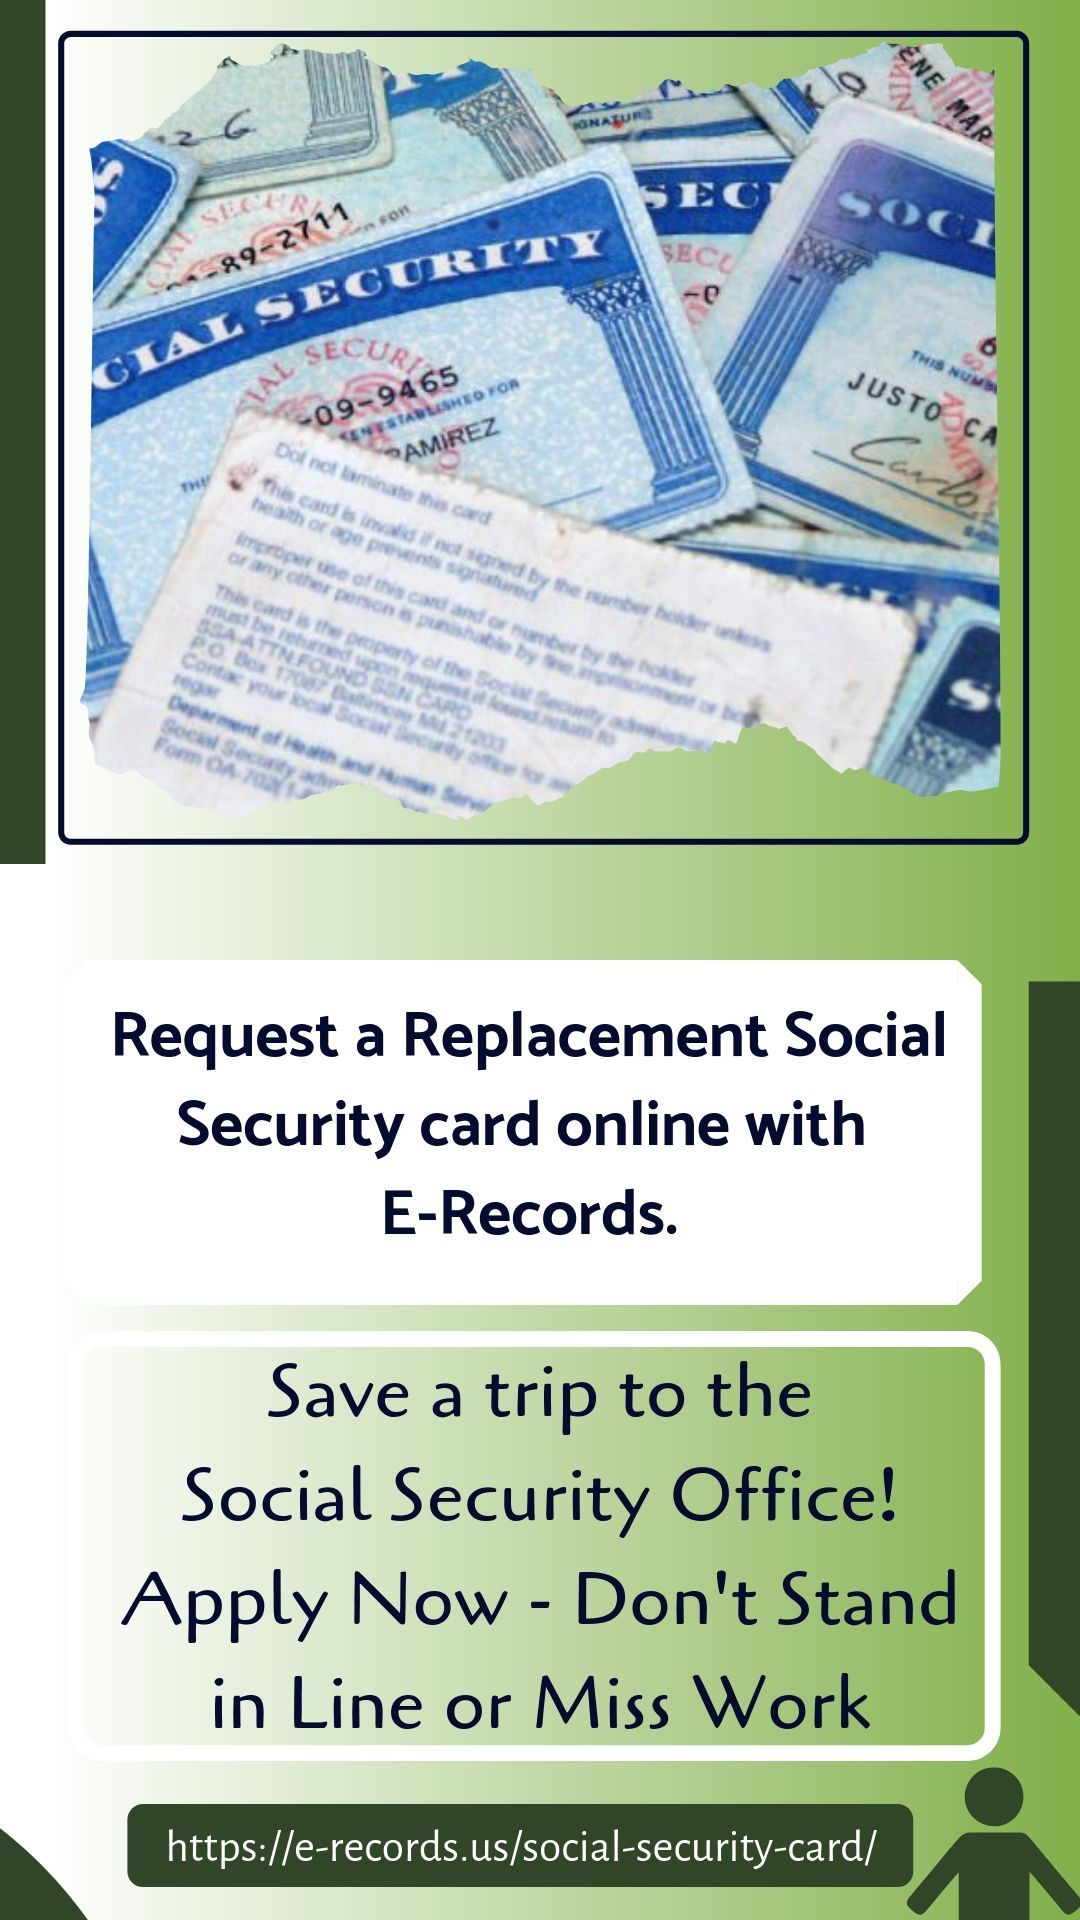 Request A Social Security Card Replacement Online E Records Social Security Card Social Security Office Waiting In Line